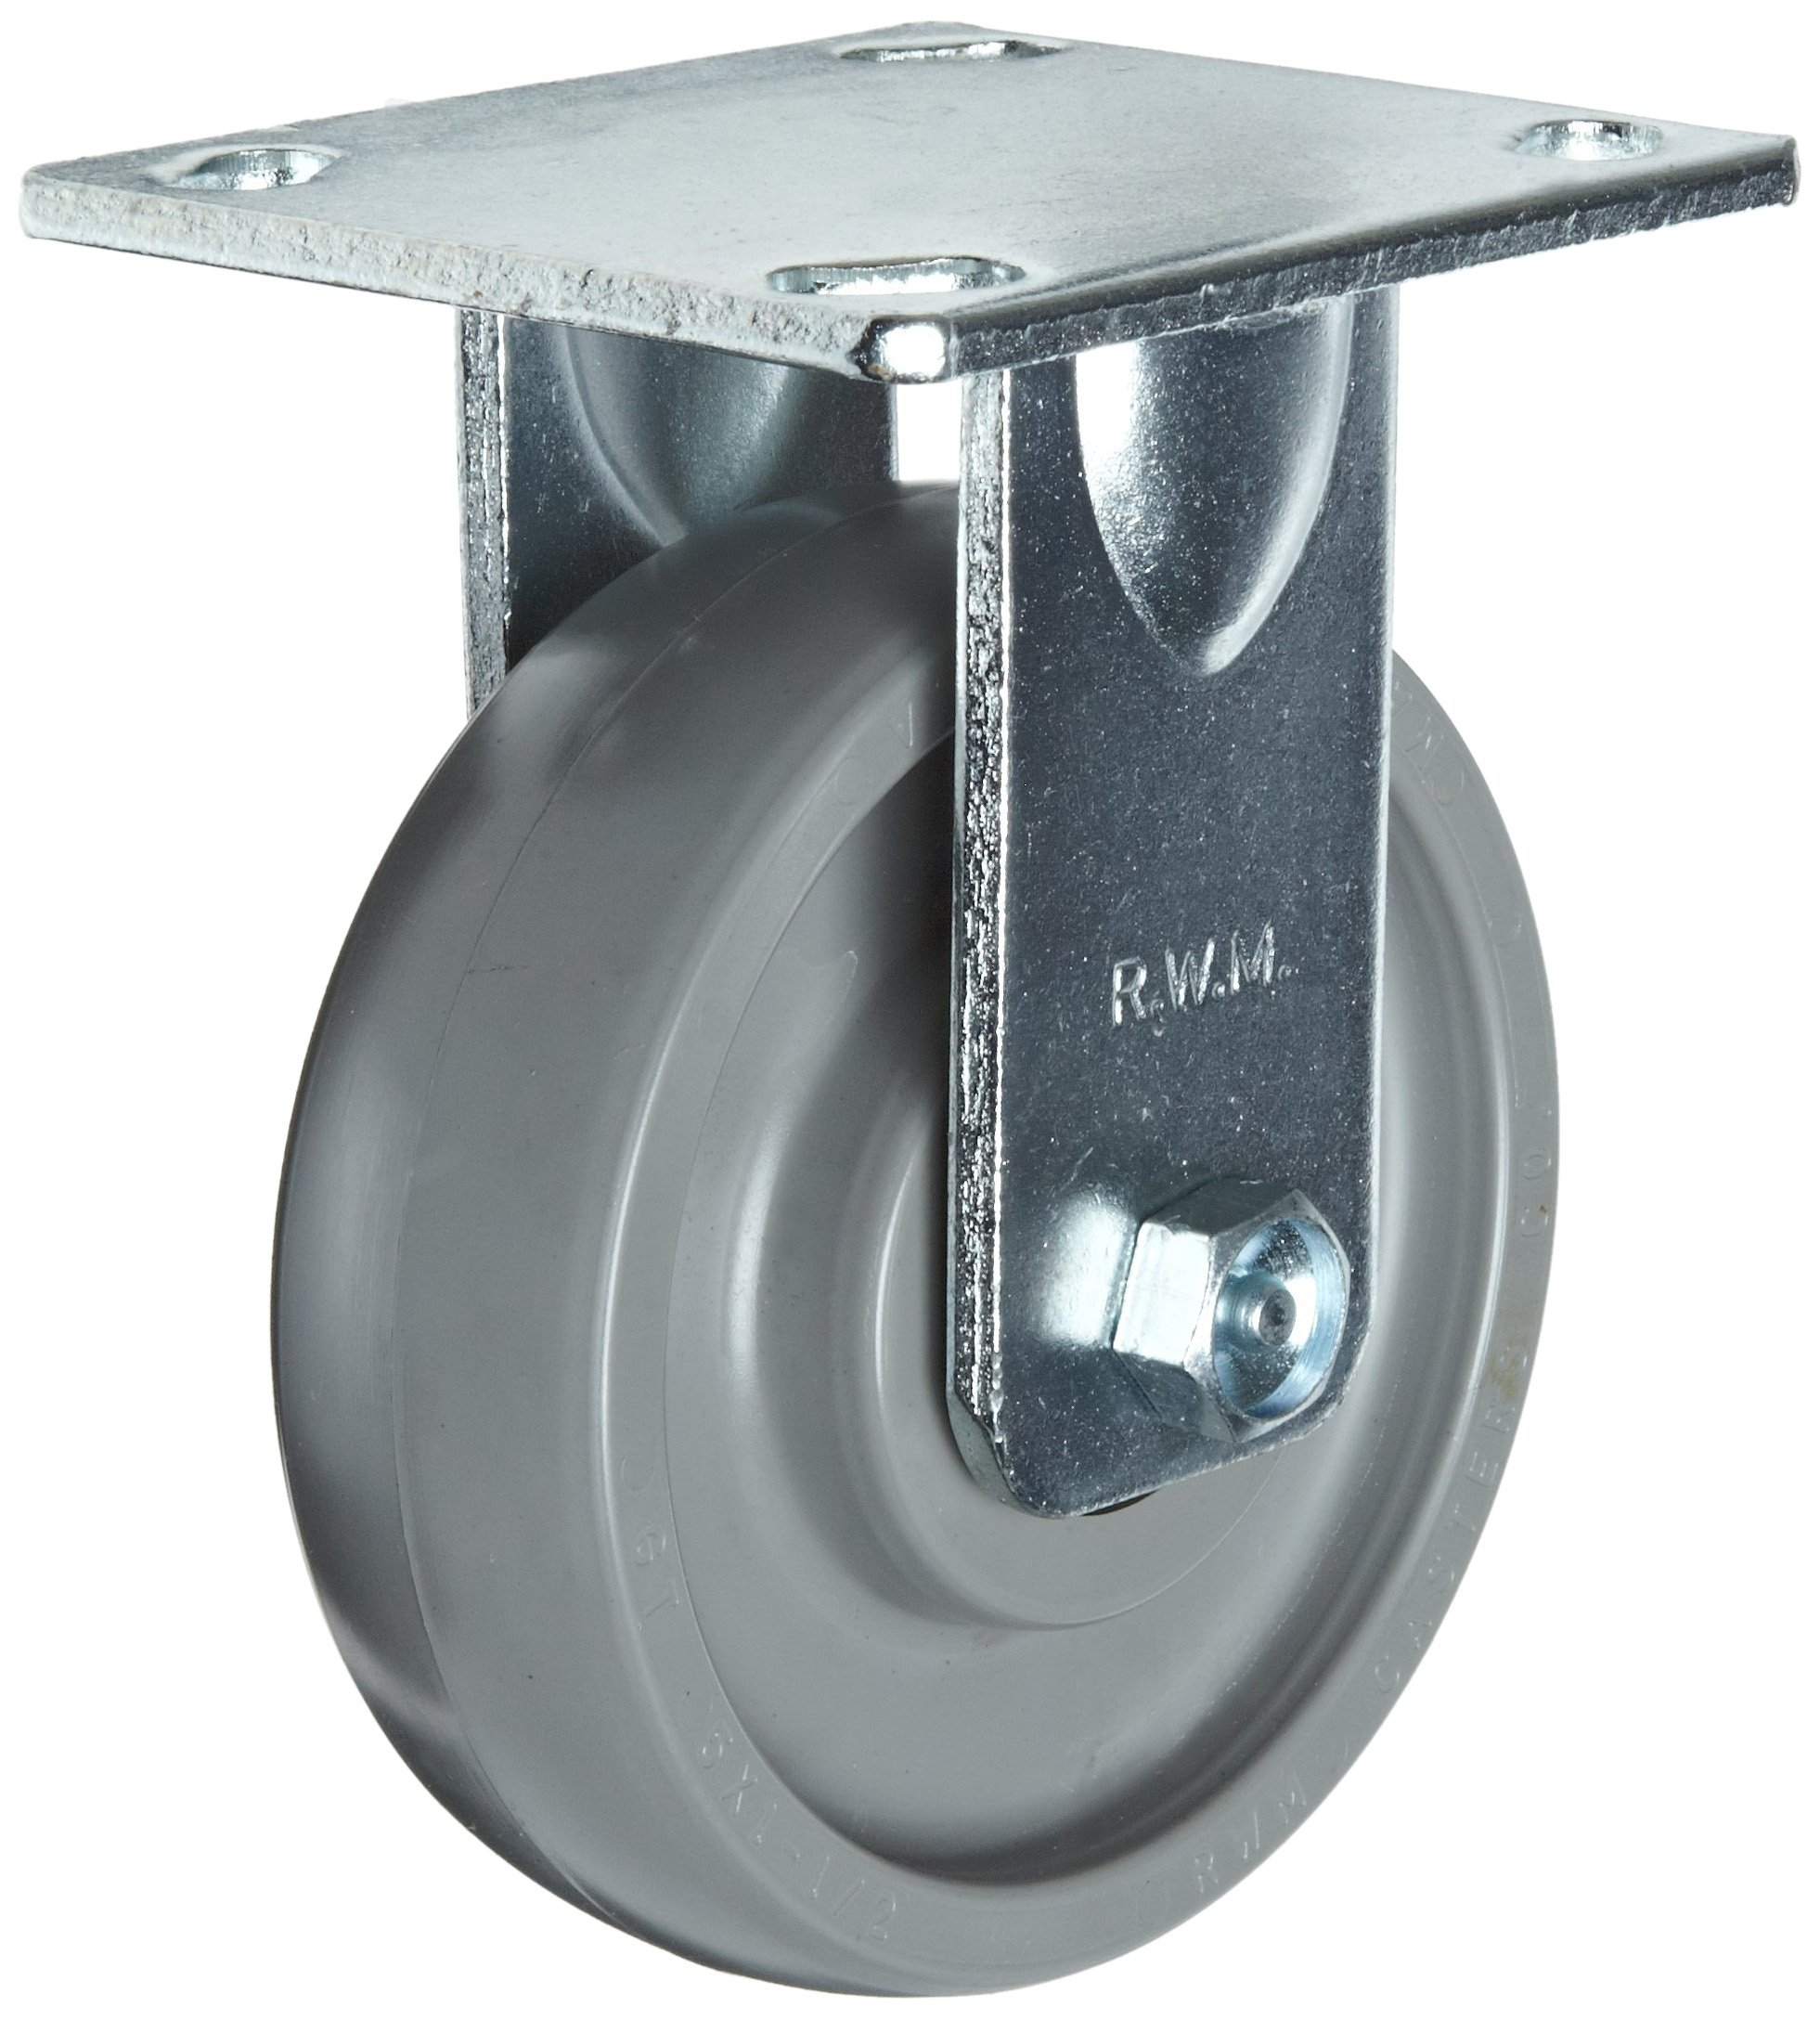 RWM Casters S65 Series Plate Caster, Rigid, Kingpinless, Rubber on Aluminum Wheel, Stainless Steel Plate, Stainless Steel Ball Bearing, 1000 lbs Capacity, 8'' Wheel Dia, 2'' Wheel Width, 10-1/8'' Mount Height, 4-1/2'' Plate Length, 4'' Plate Width